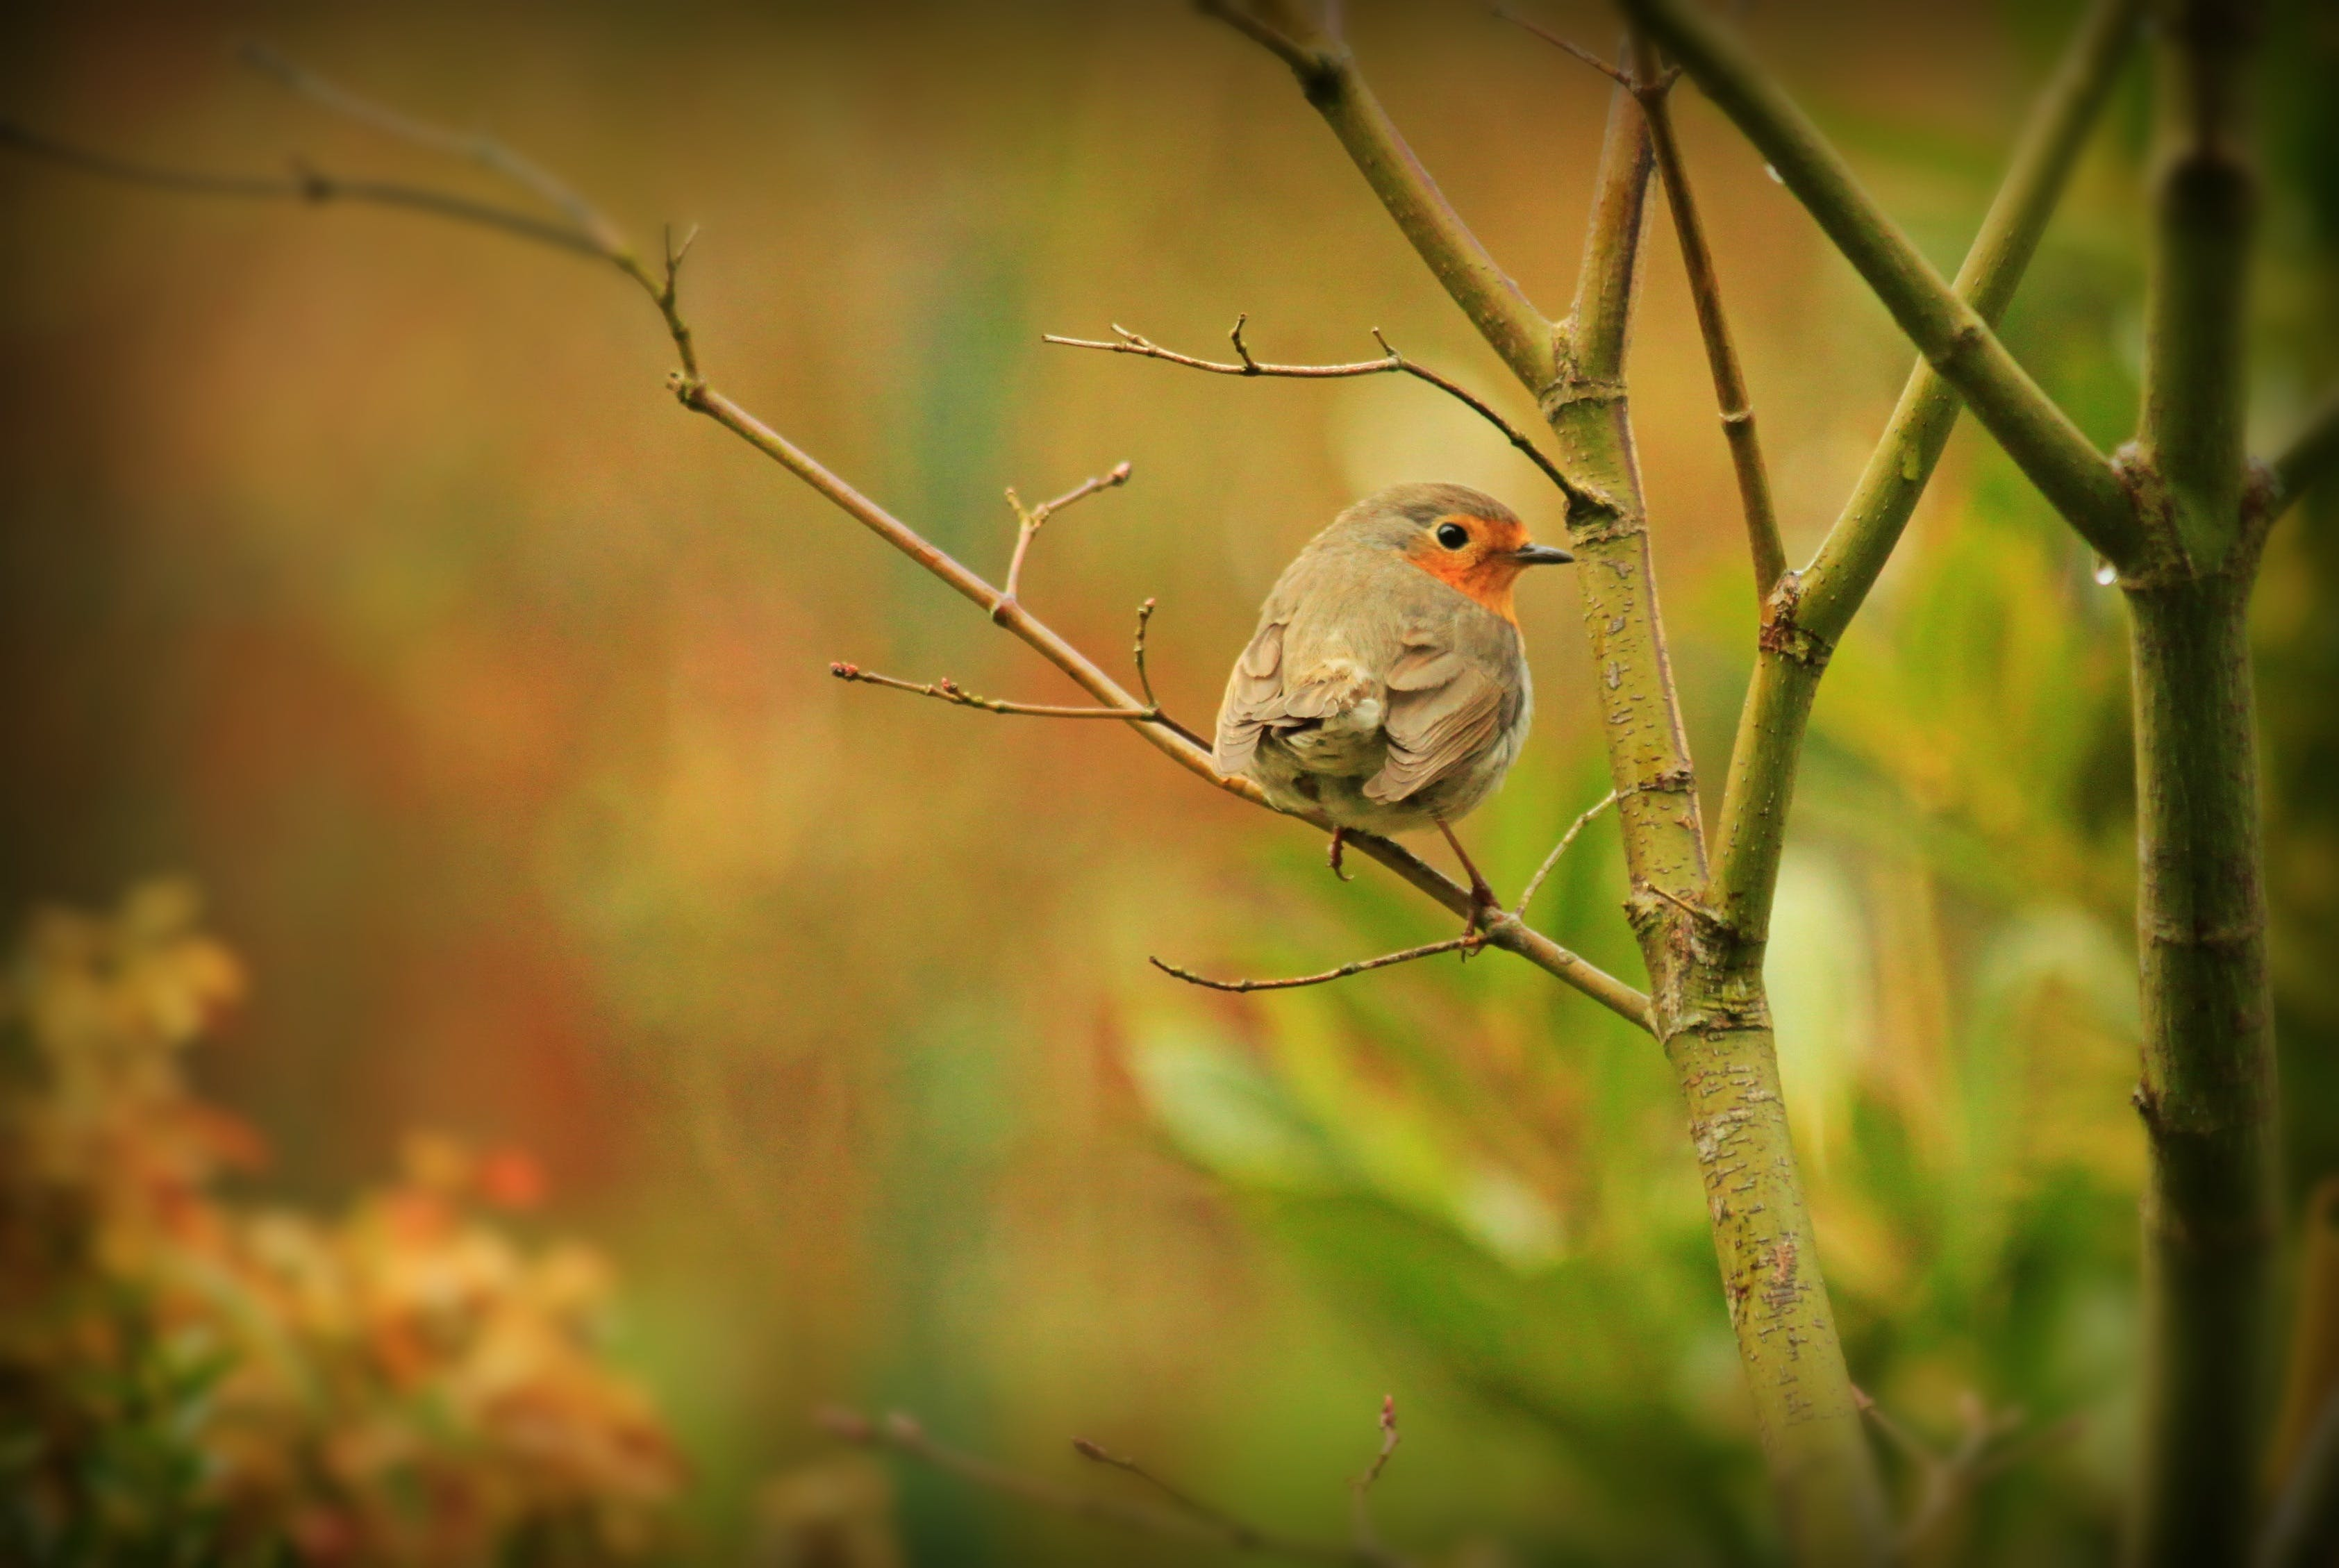 Selective Focus Photography of Grey Bird in Tree Branch